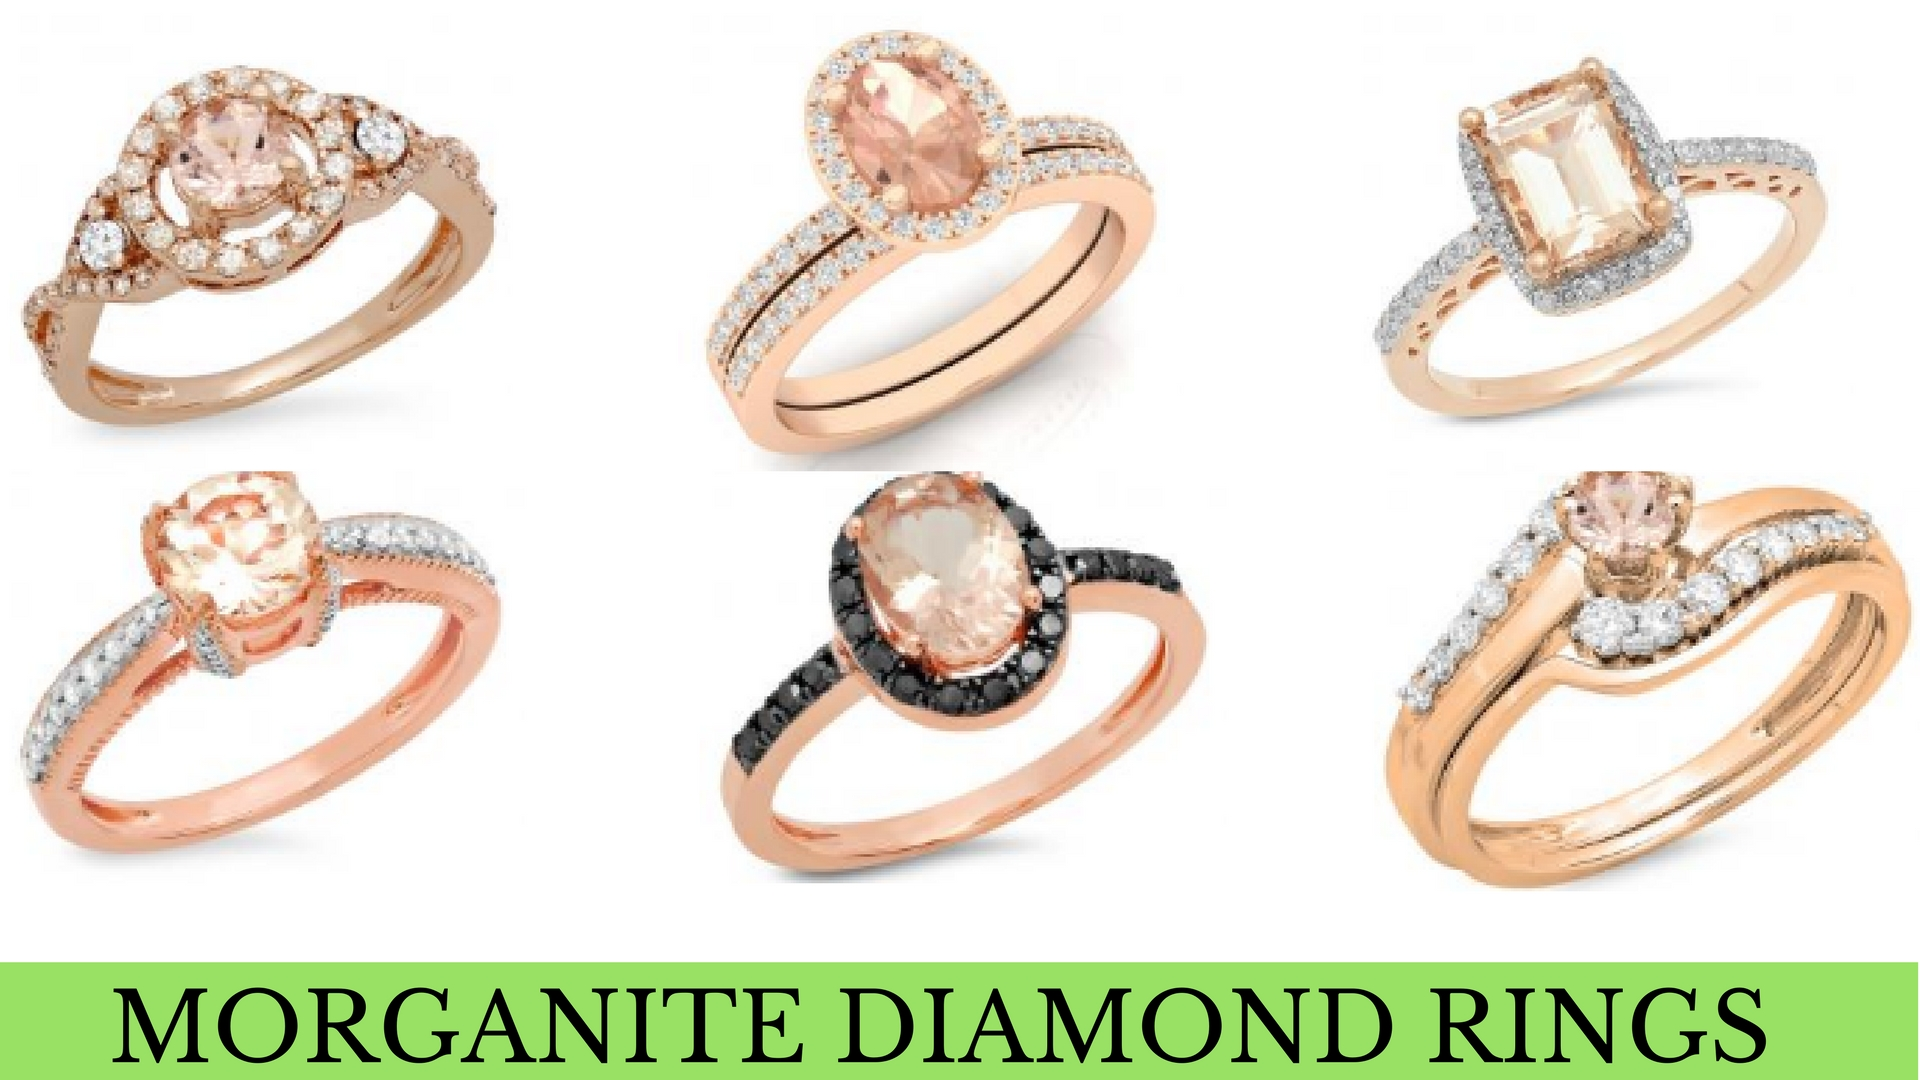 What is a Morganite Engagement Ring